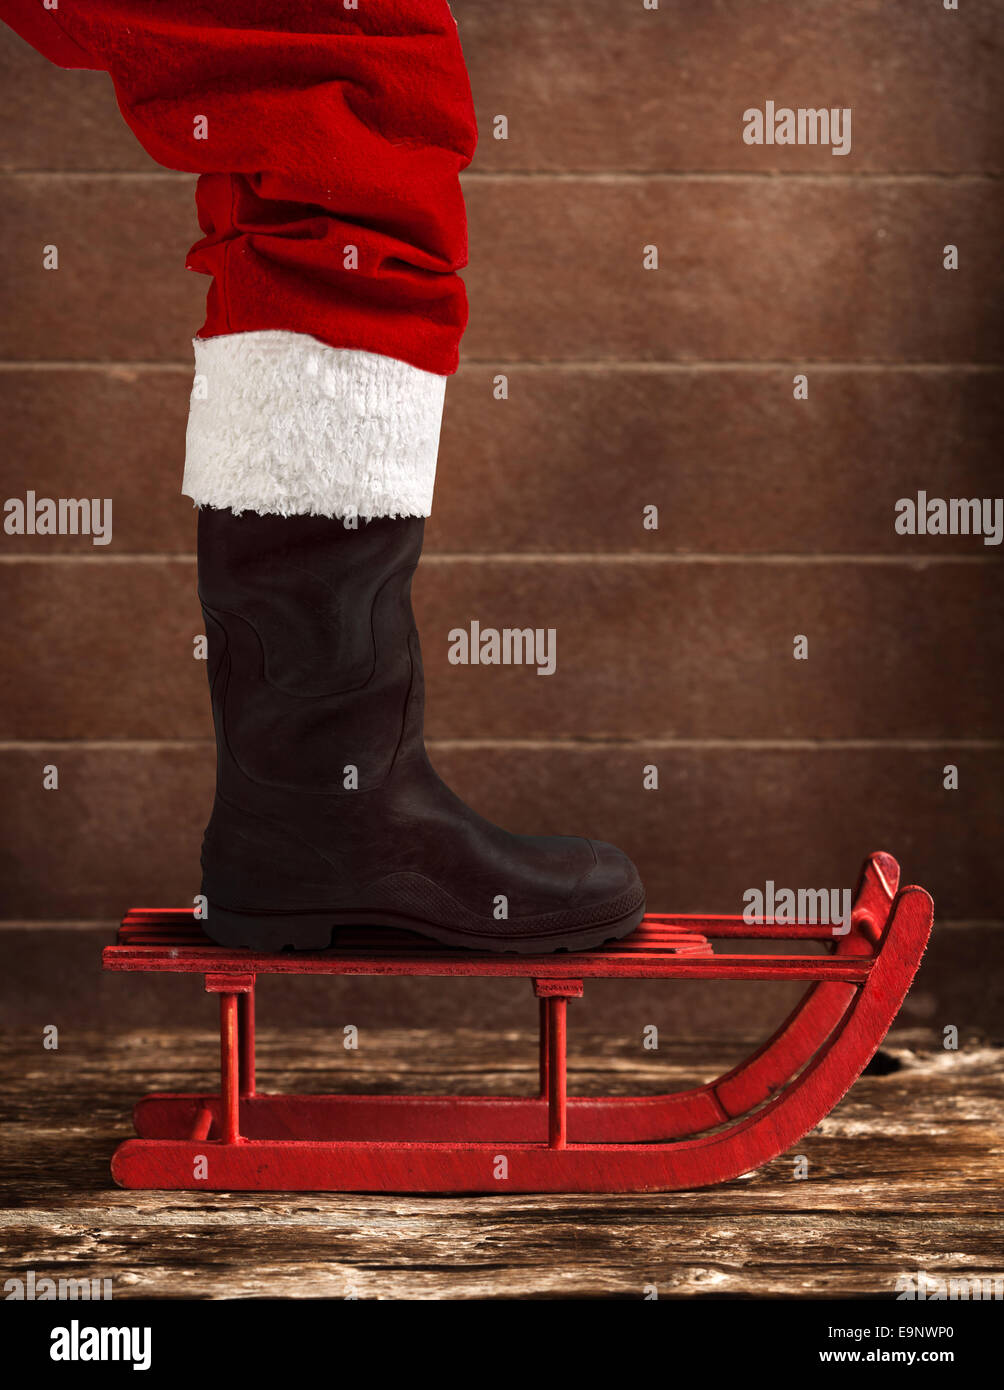 Wooden red sled with the boot of Santa Claus - Stock Image